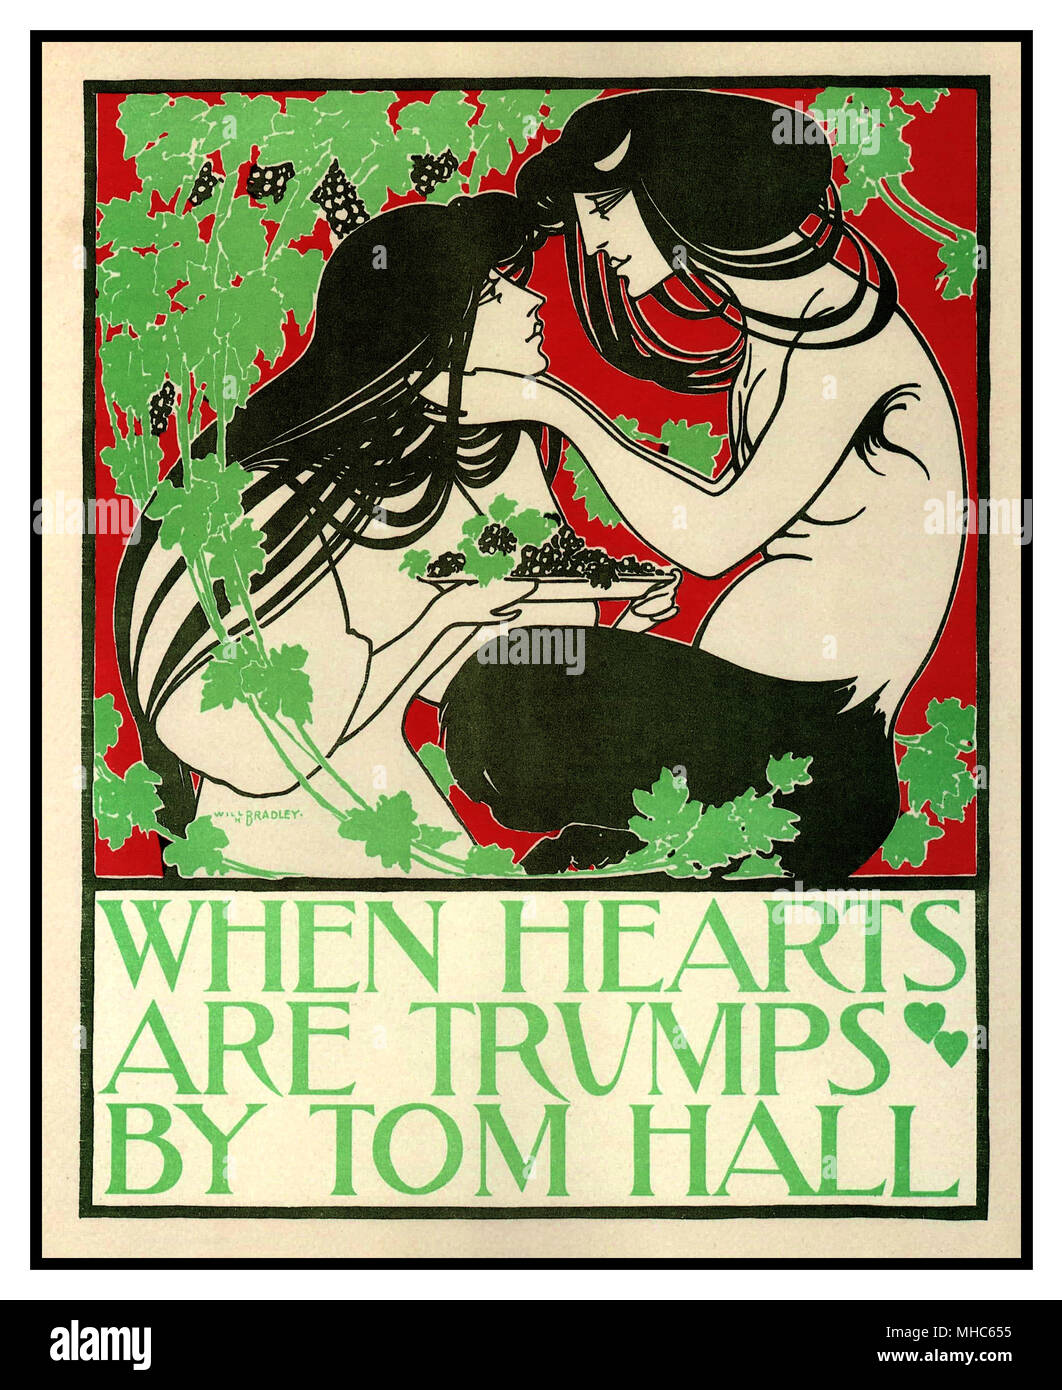 When Hearts Are Trumps, Art Nouveau Poster by Will Bradley, 1894 A vintage art nouveau poster for the book When Hearts are Trumps written by Tom Hall. The high resolution art nouveau poster was illustrated by William Henry Bradley in 1894. - Stock Image